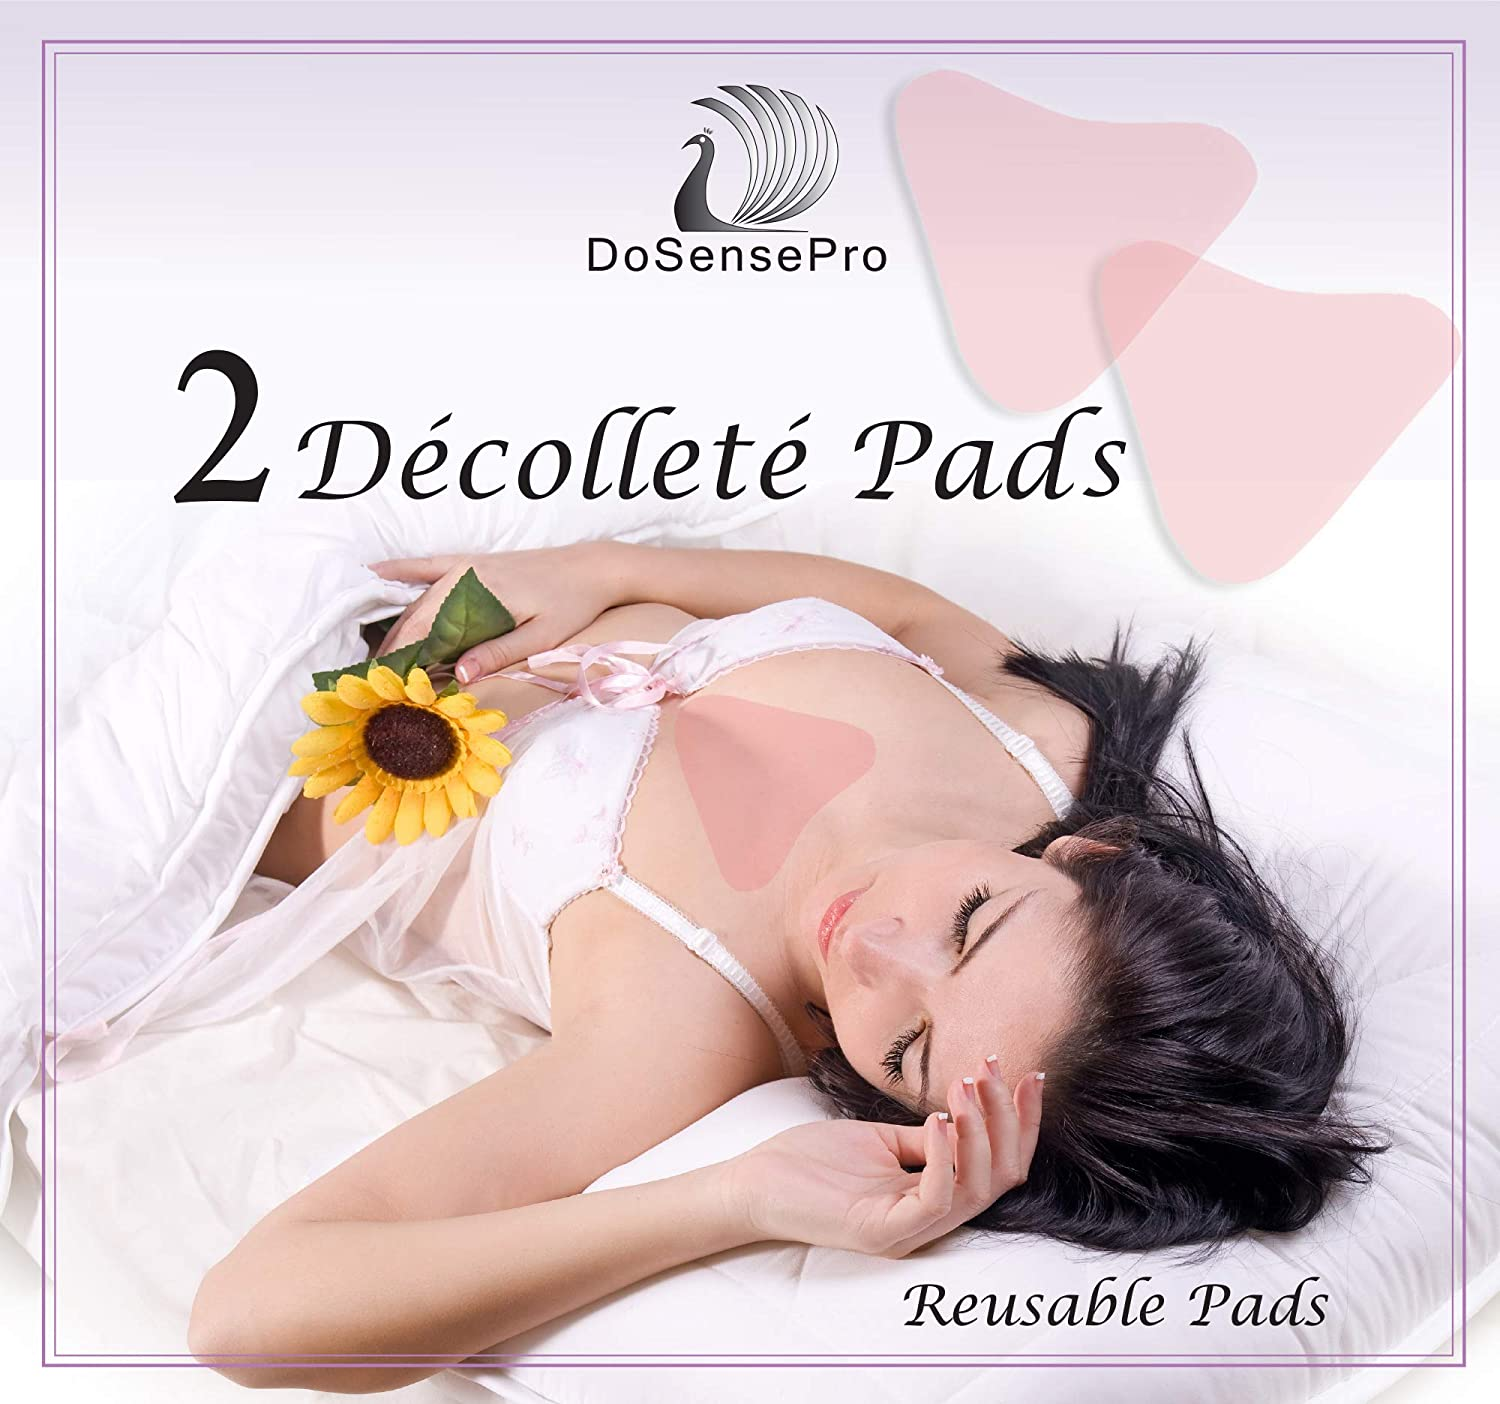 Decollete Anti Wrinkle Chest Pads - Pack of 2 Invisible Chest Pad for Cleavage Wrinkle Prevention - Results from 1st Use. Hypoallergenic Anti-Wrinkles Patch, Reusable Anti-Aging Sticker by DoSensePro: Beauty